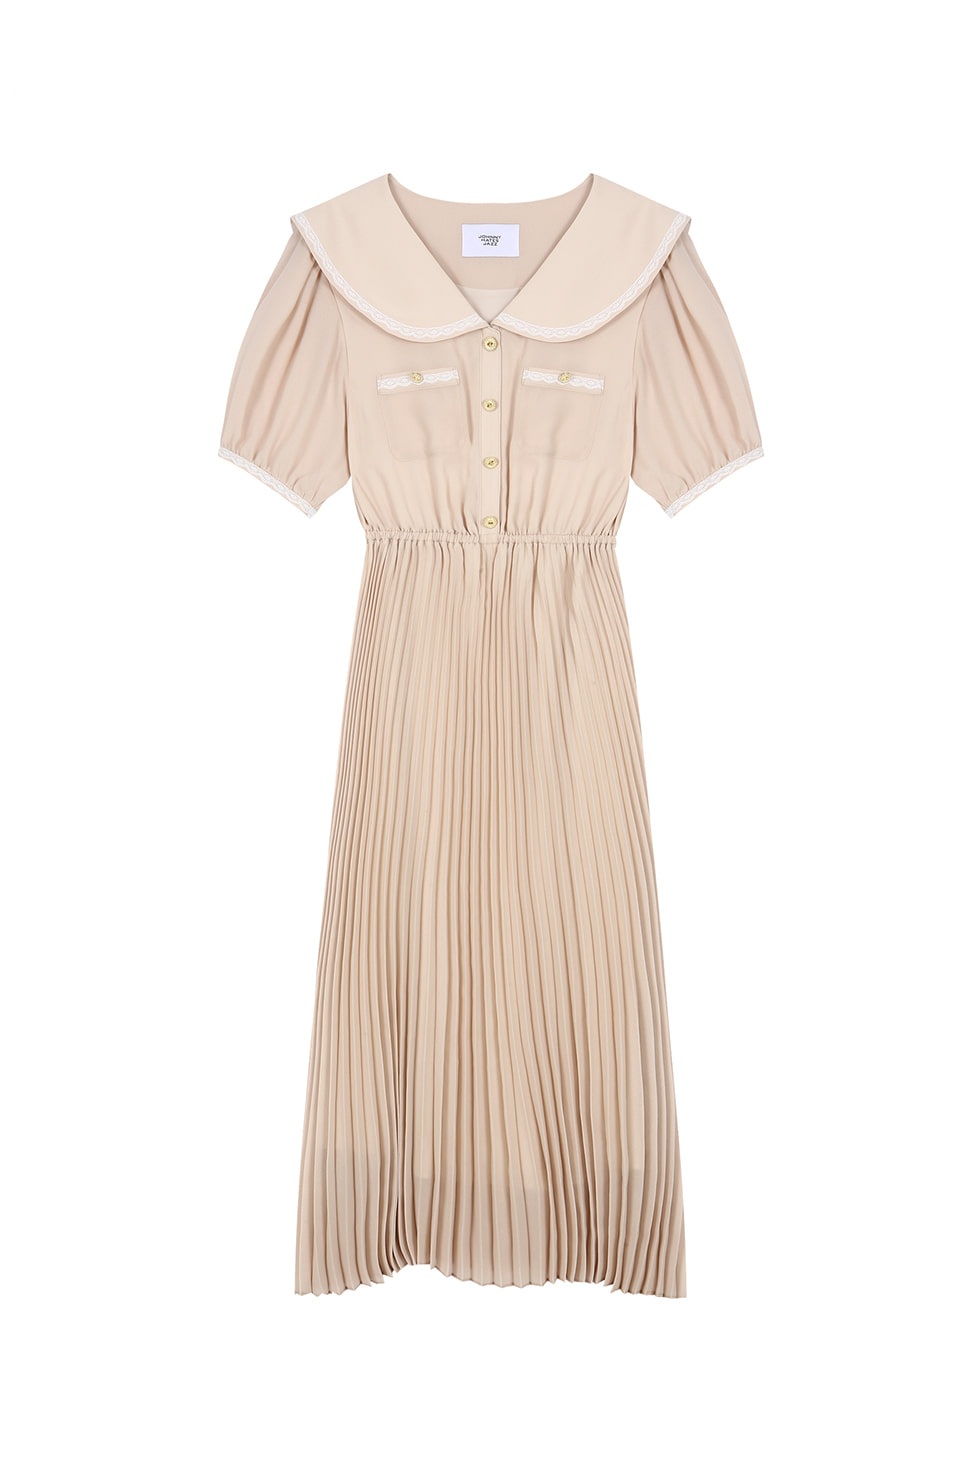 WIDE COLLAR CHIFFON DRESS - BEIGE